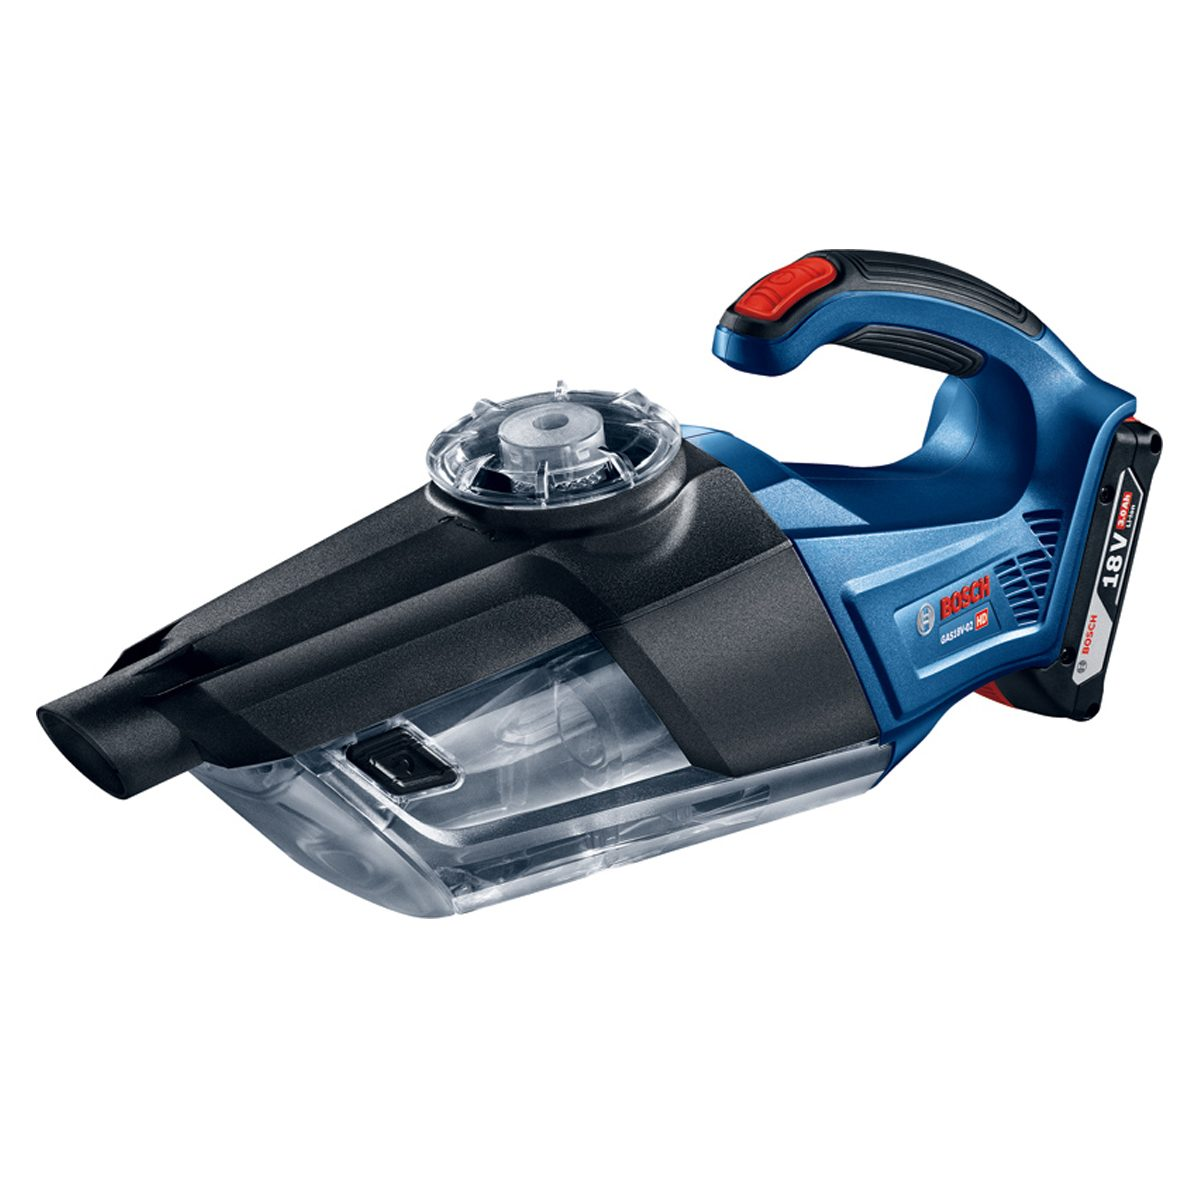 A Blue and Black Bosch Handheld Vacuum | Construction Pro Tips